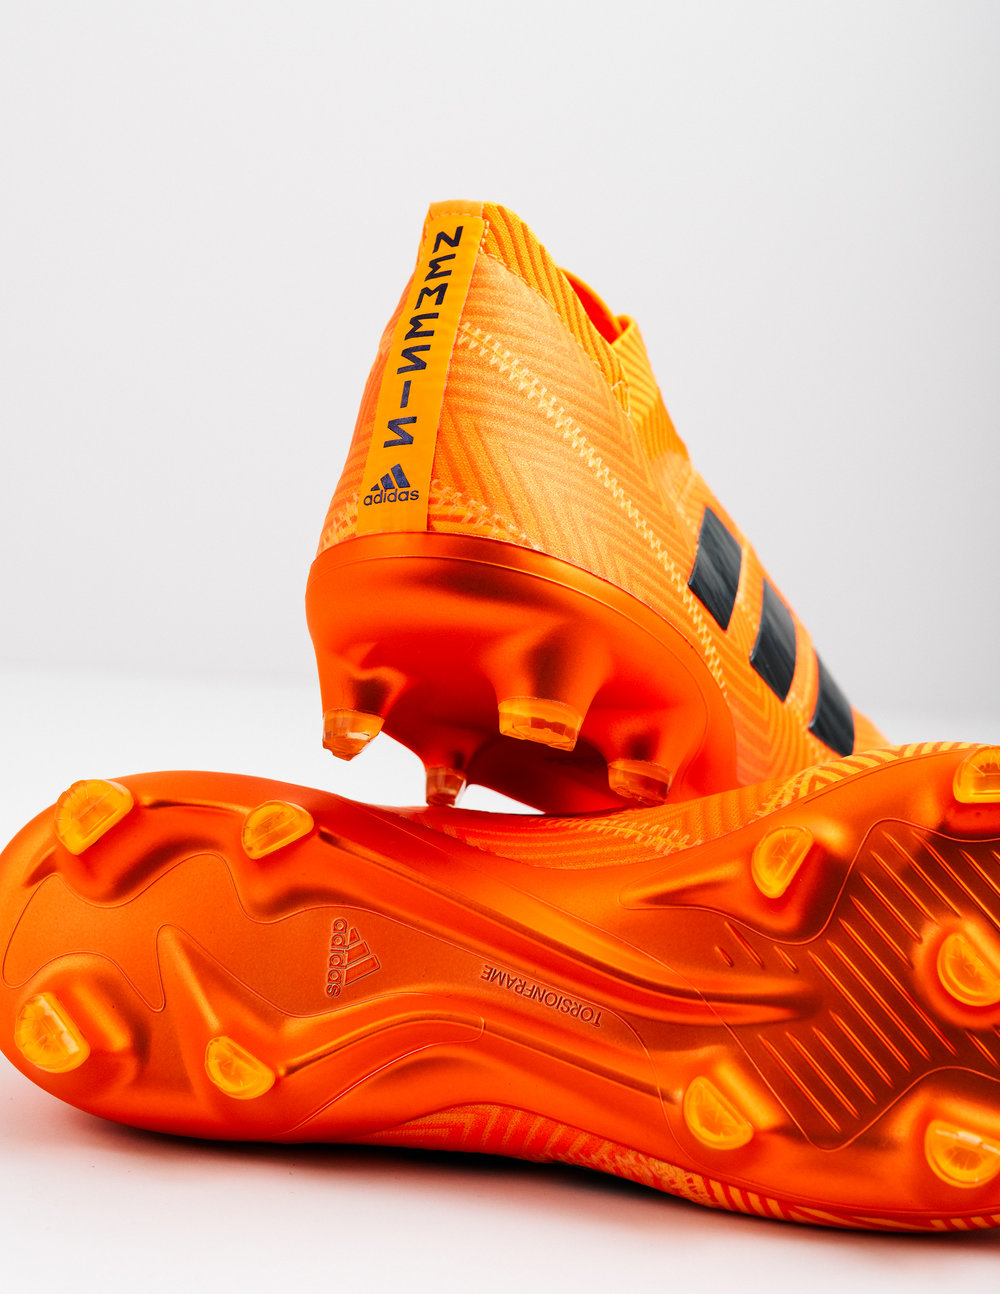 20180615_kenwyn_World Cup Footwear-6715-Edit.jpg